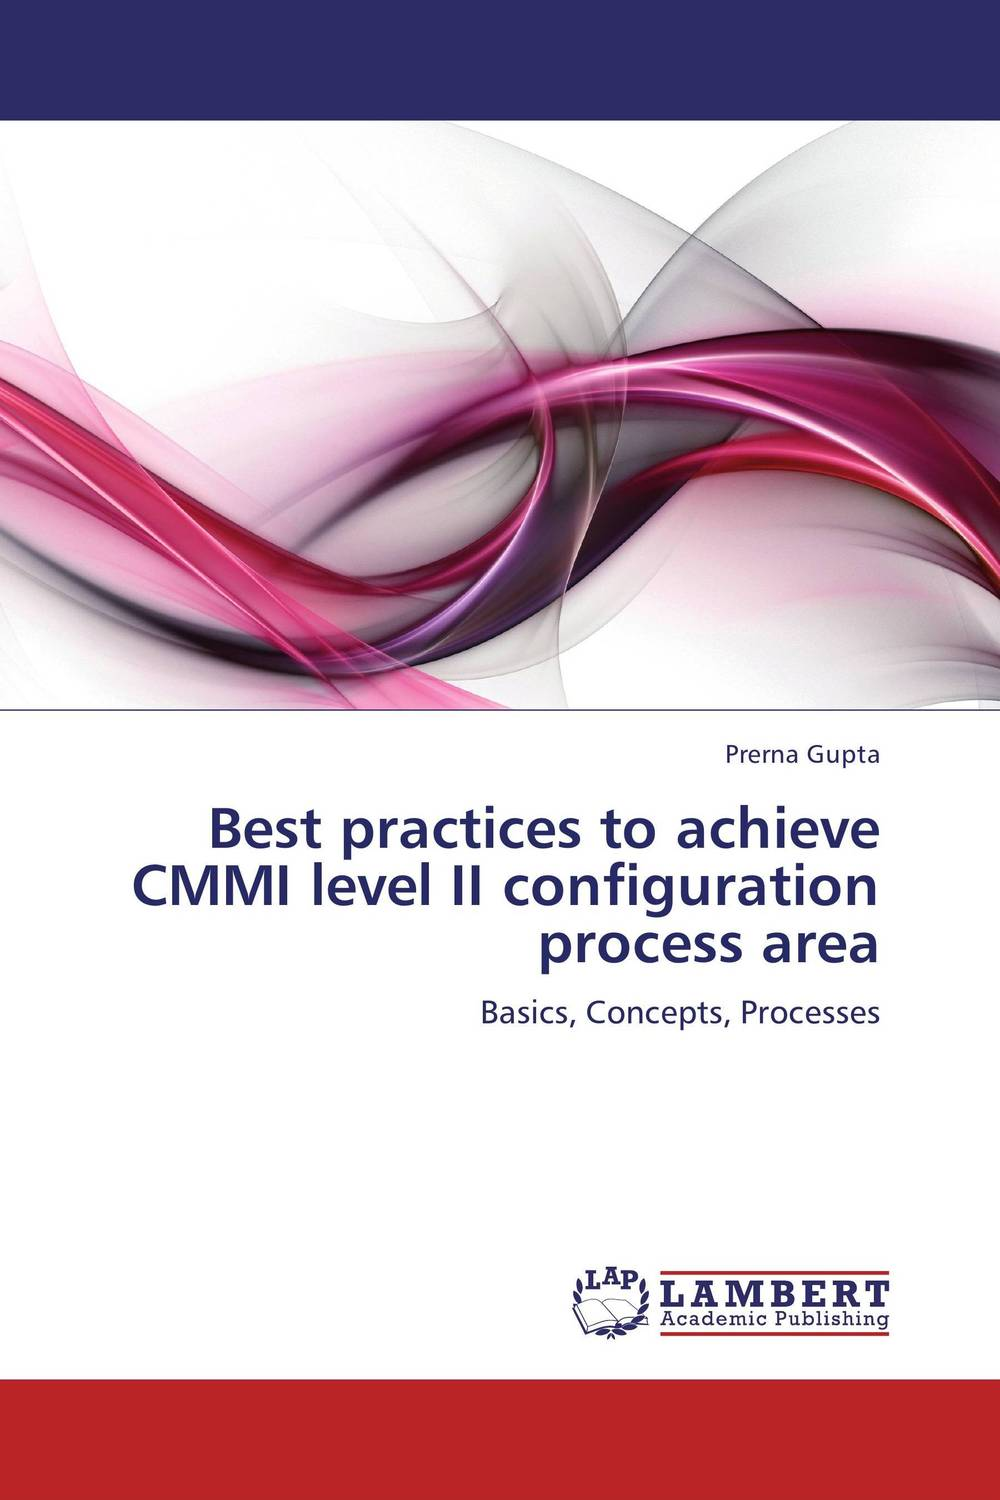 Best practices to achieve CMMI level II configuration process area driven to distraction